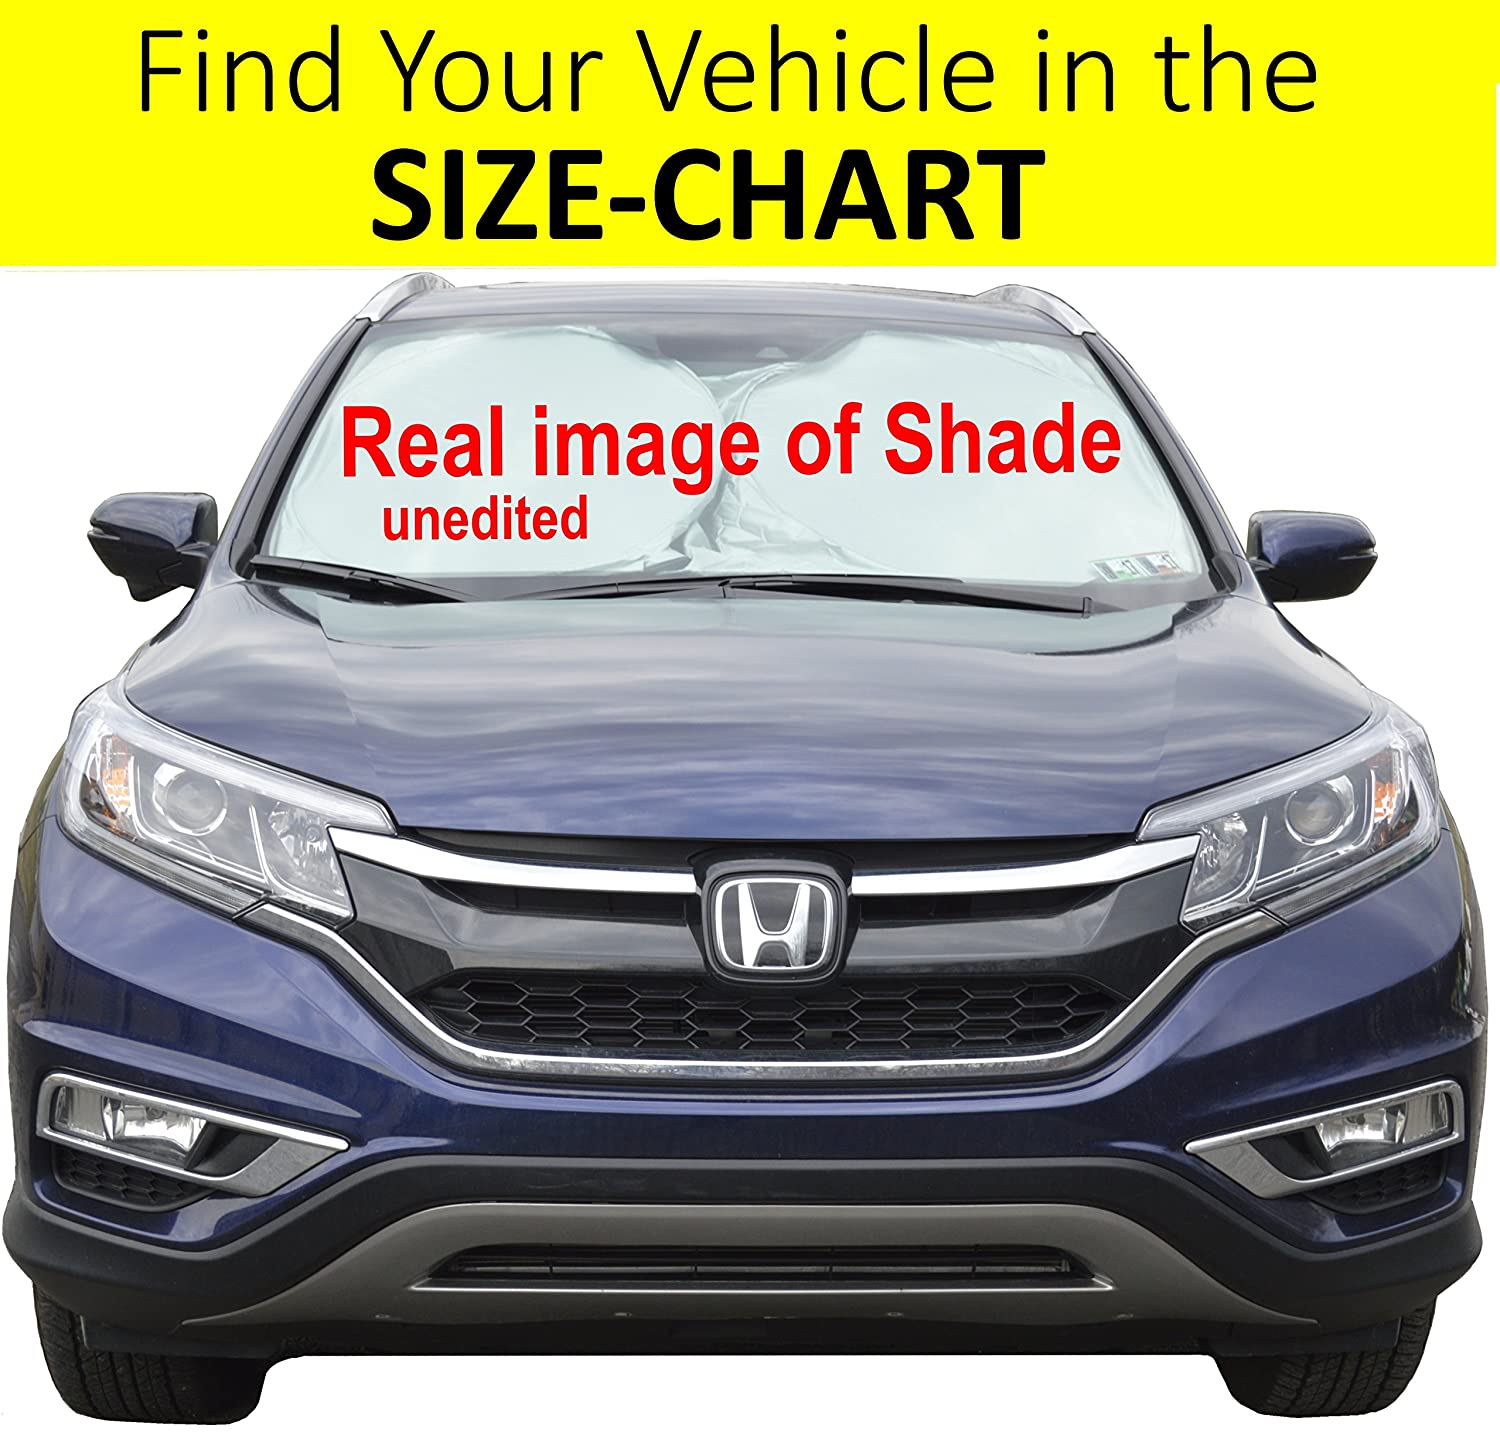 Windshield Sun Shade Exact-Fit Size Chart for Cars Suv Trucks Minivans Sunshades Keeps Your Vehicle Cool Heat Shield Medium Anchor Sun Shades A1001; A1002